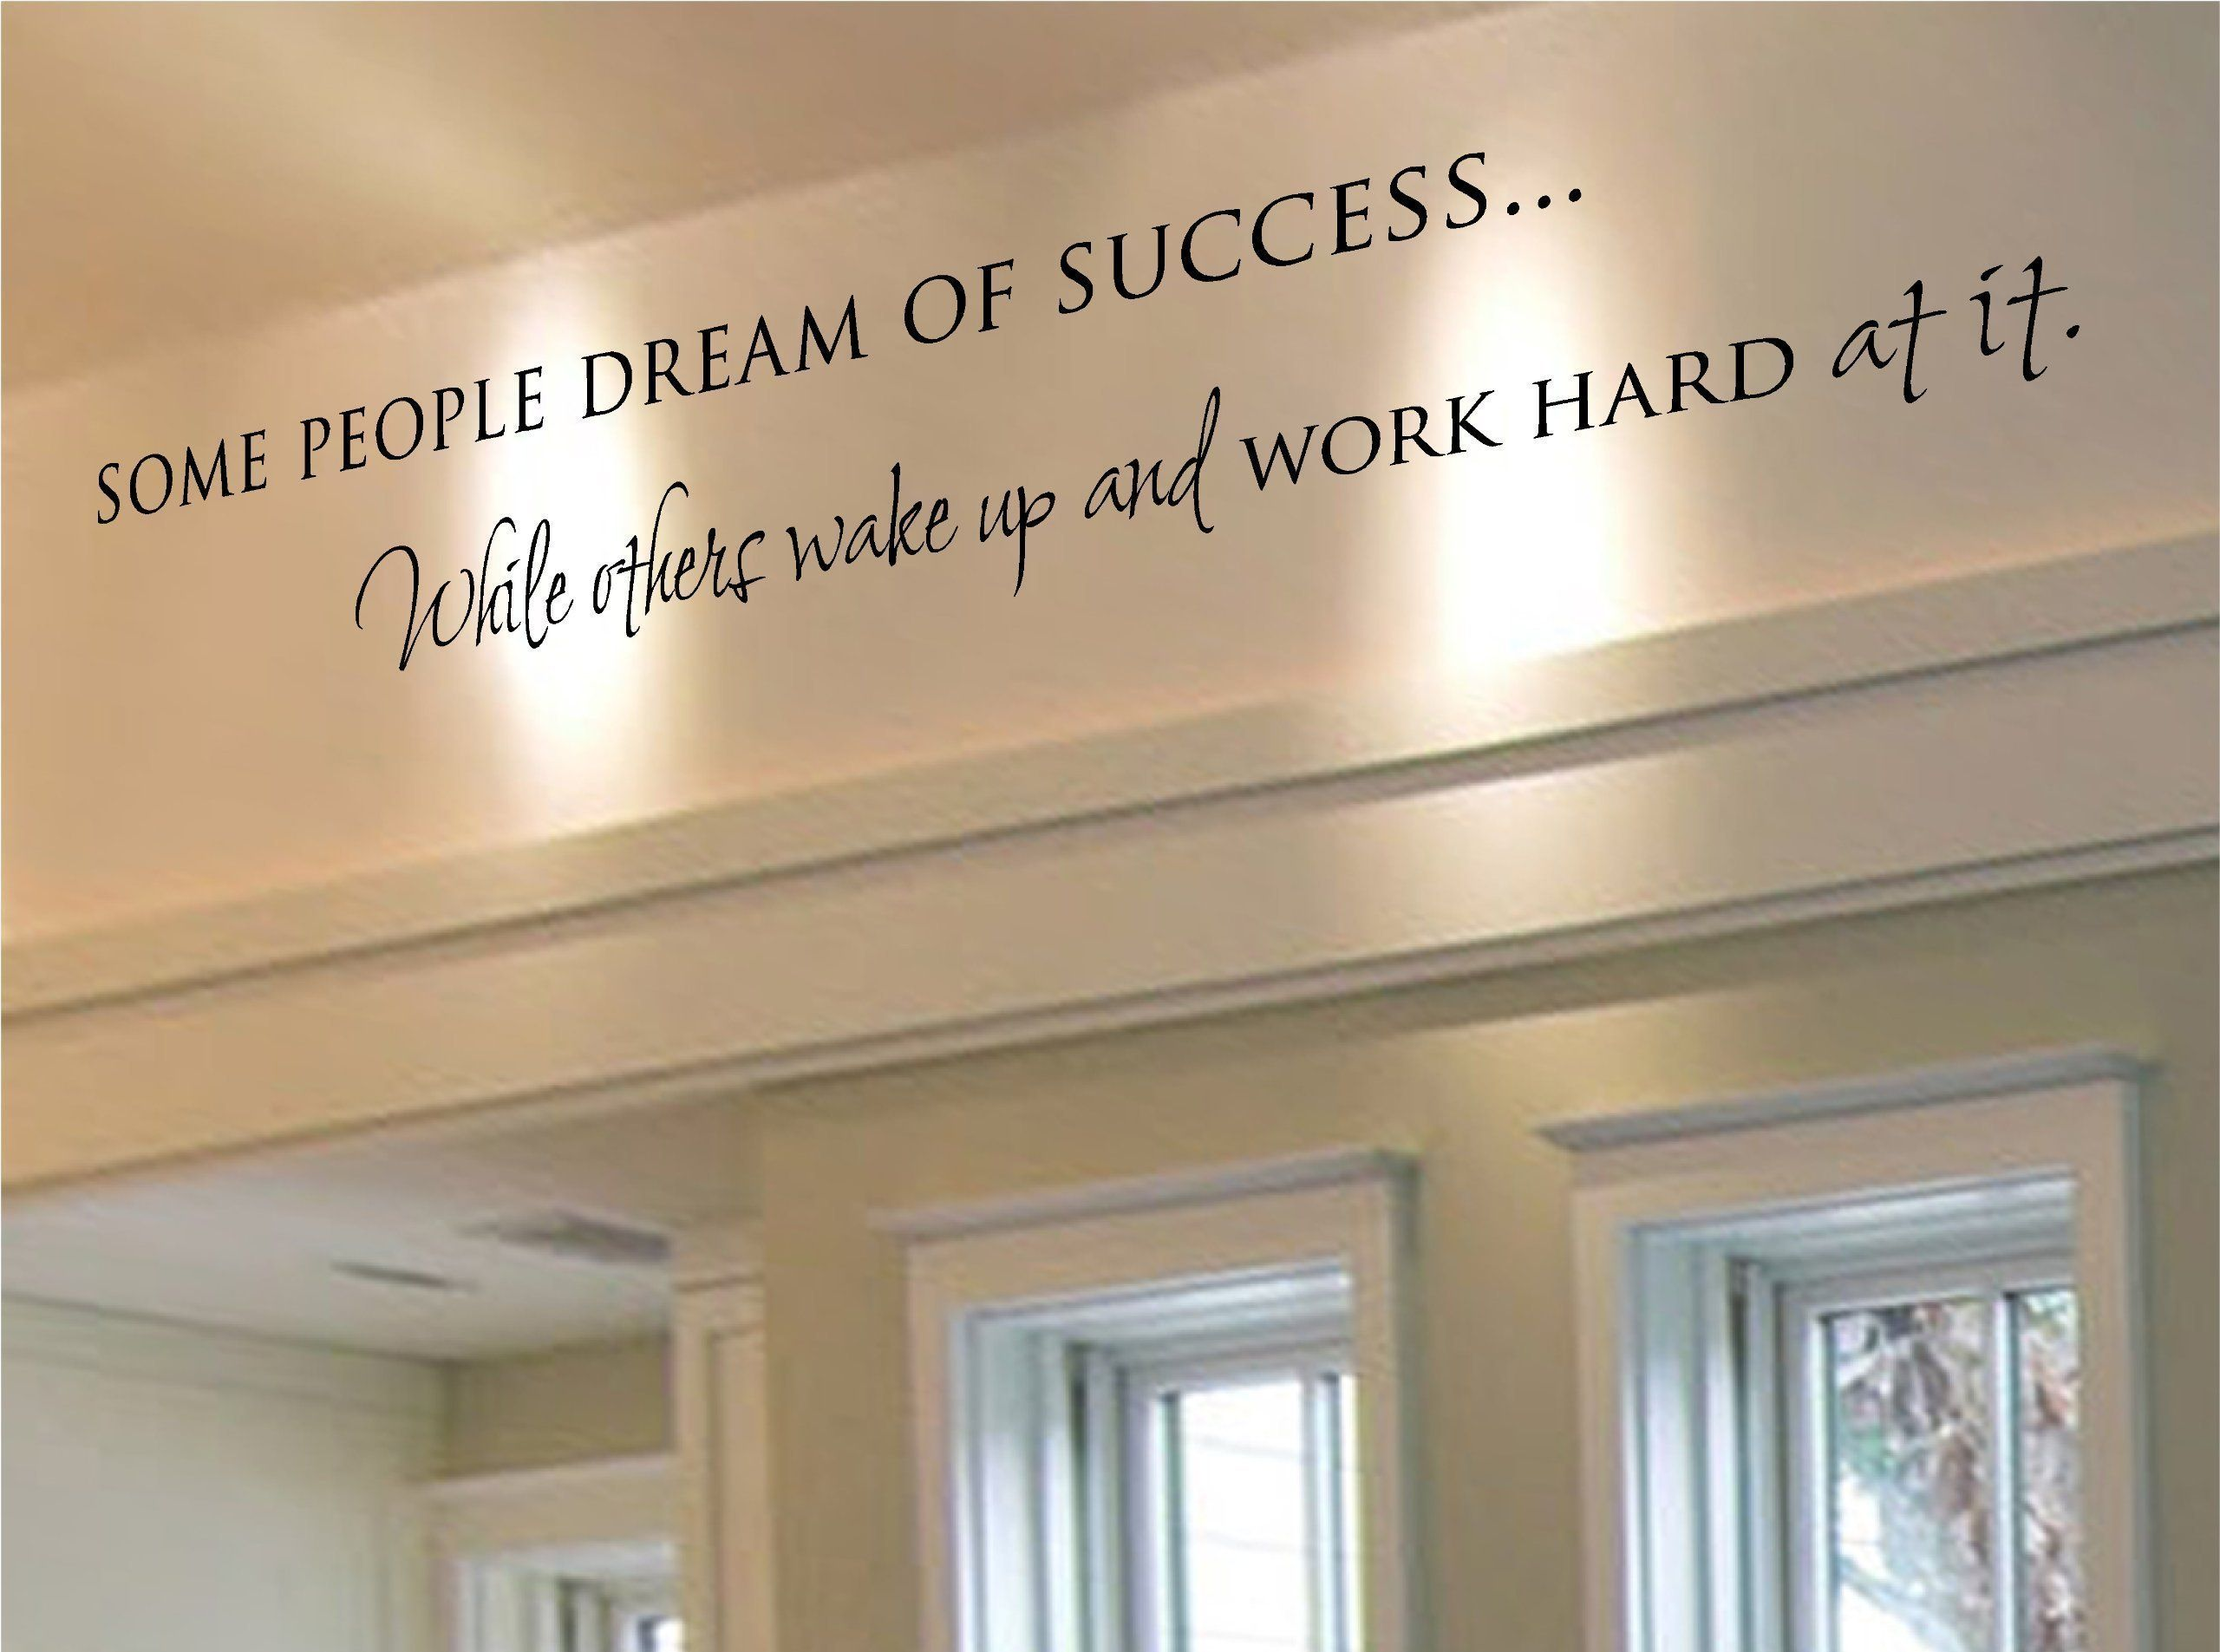 Some dream of success while others wake up and work hard at it